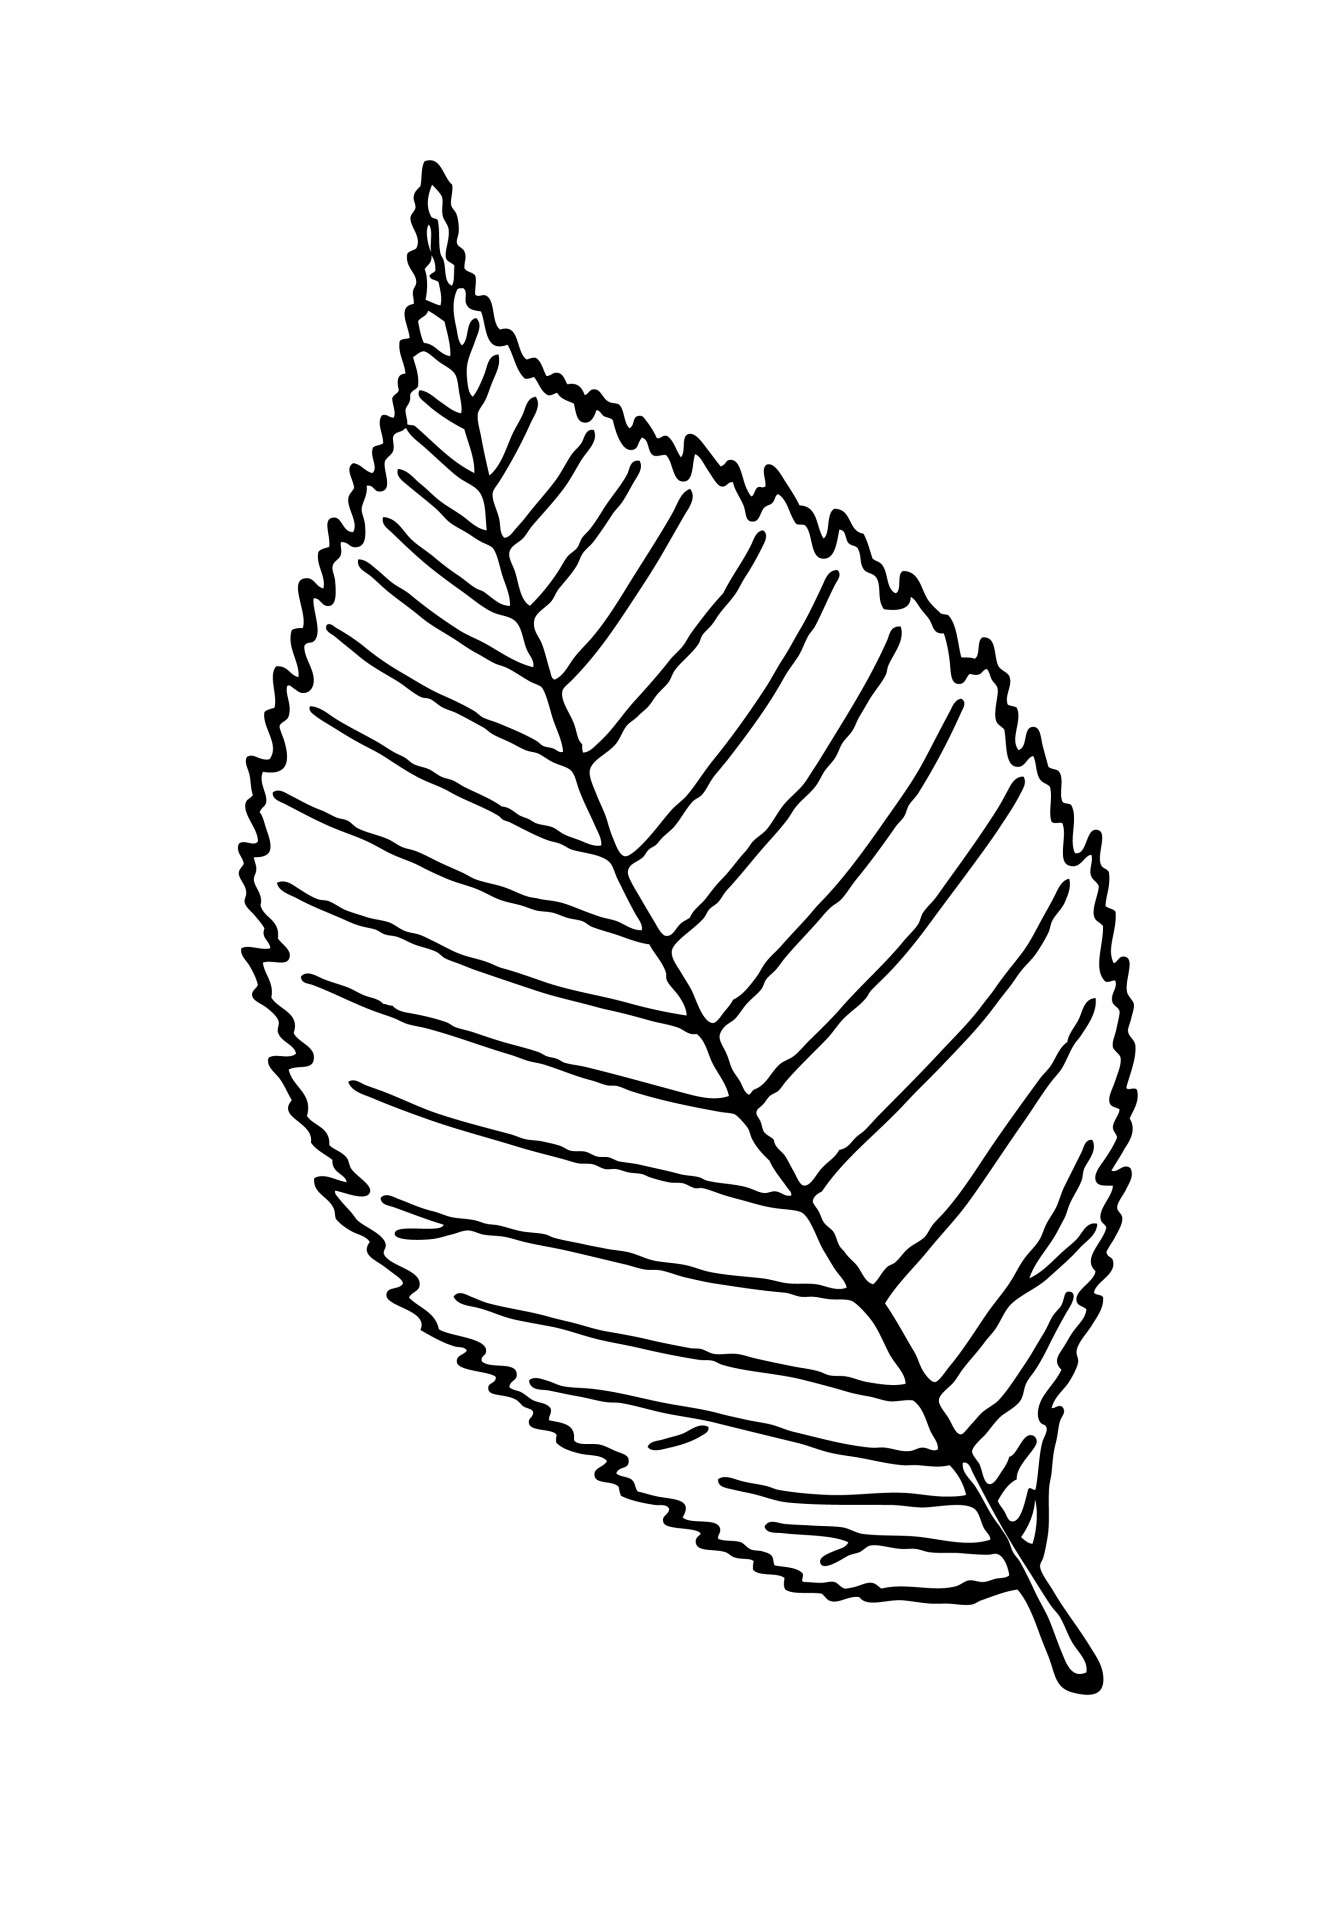 1344x1920 15 Leaf Pictures Black And White Images Black And White Pictures